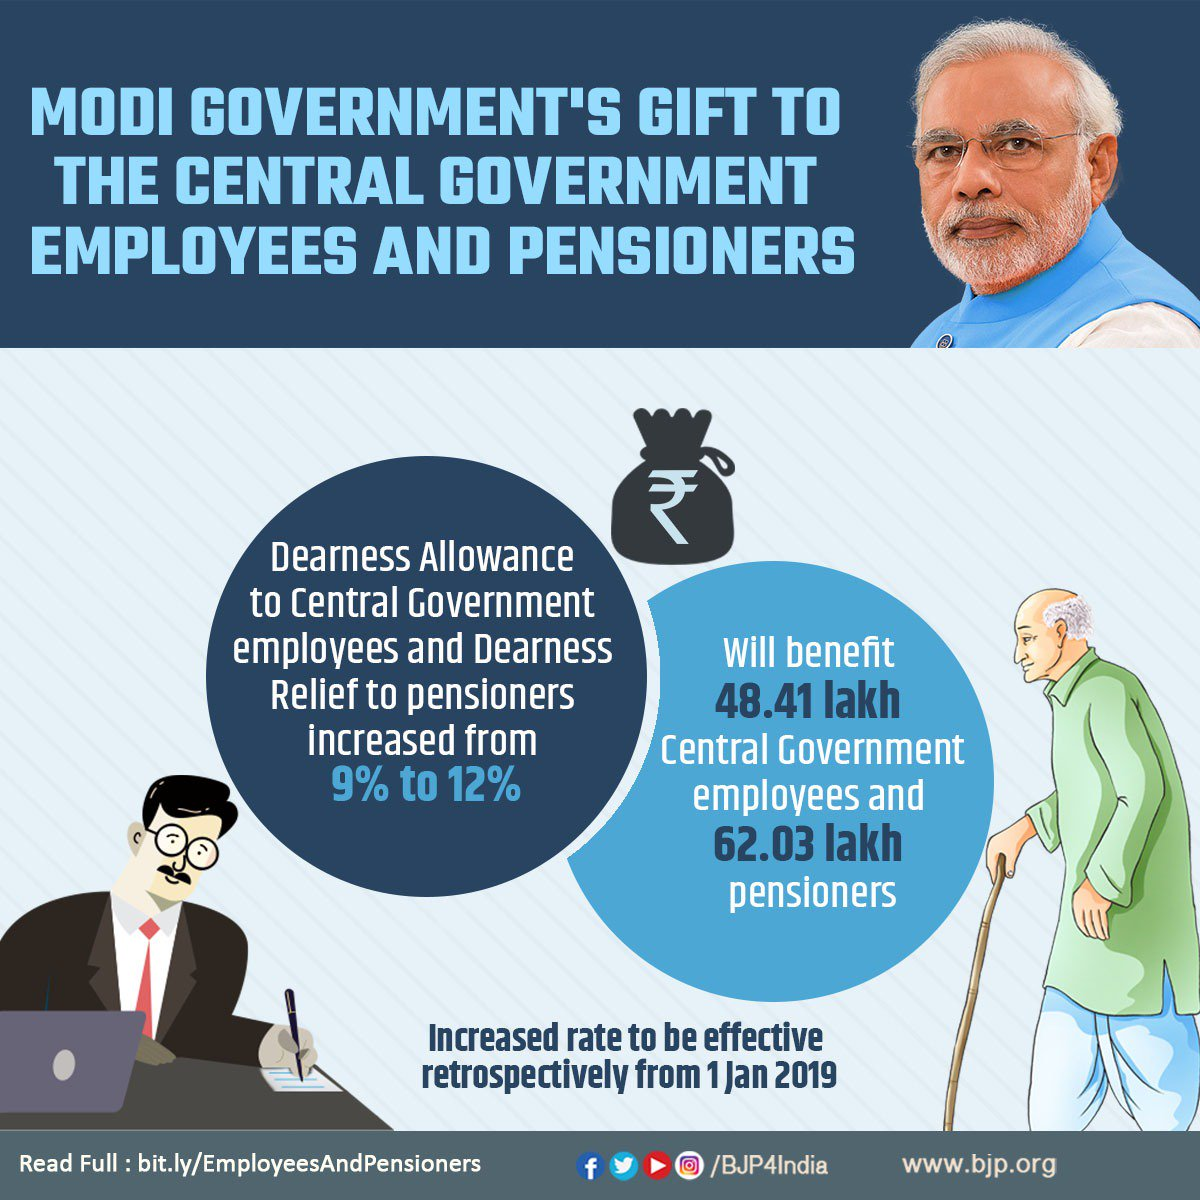 Modi govt's gift to the central government employees & pensioners : Dearness Allowance (DA) to central govt employees and Dearness Relief (DR) to pensioners have been increased from 9% to 12% that will benefit 48.41 lakh employees and 62.03 lakh pensioners.